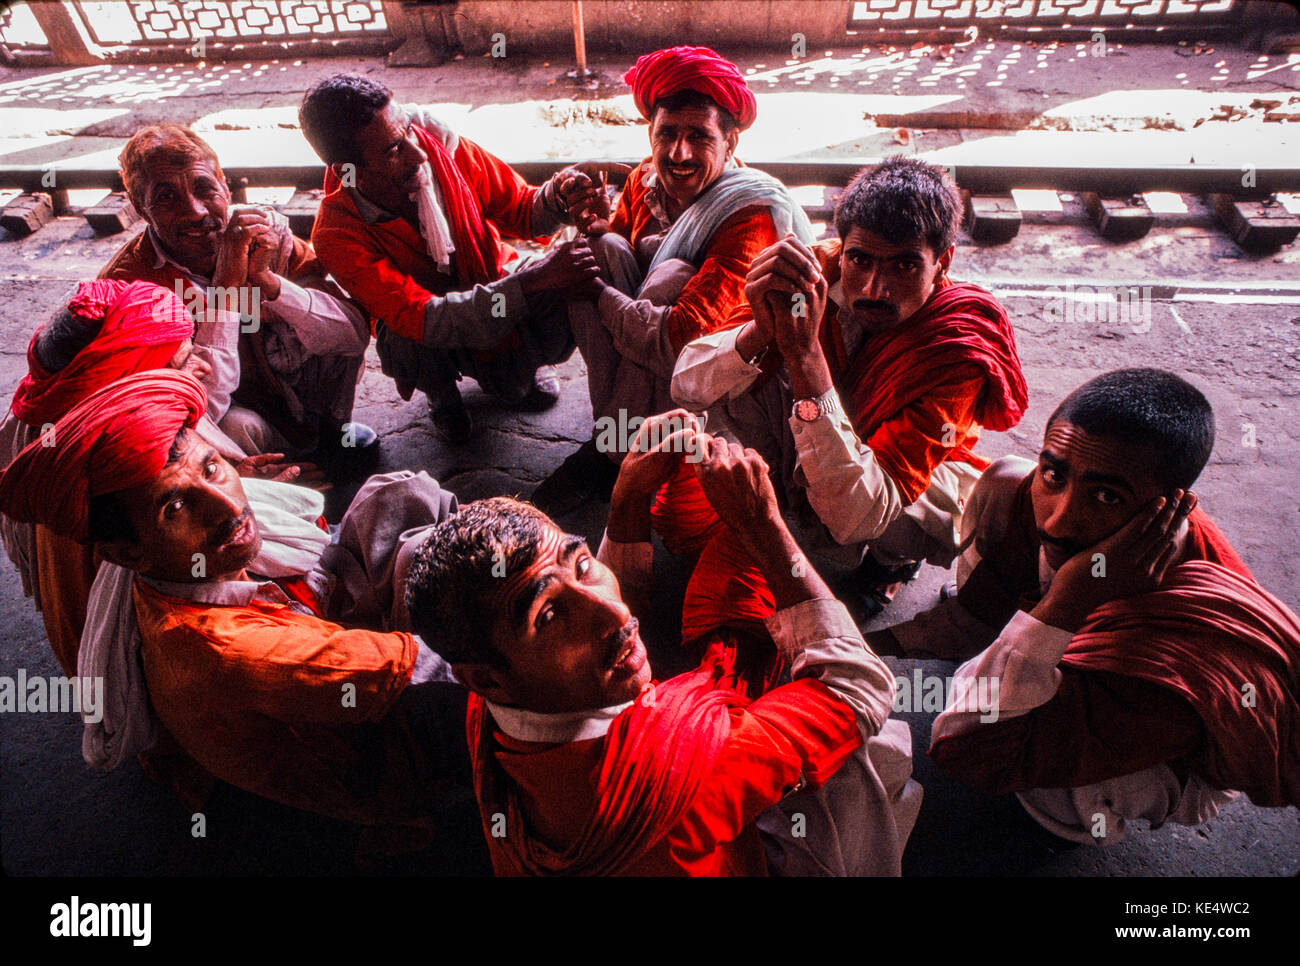 Porters waiting for work at Lahore railway station, Pakistan 1990 - Stock Image